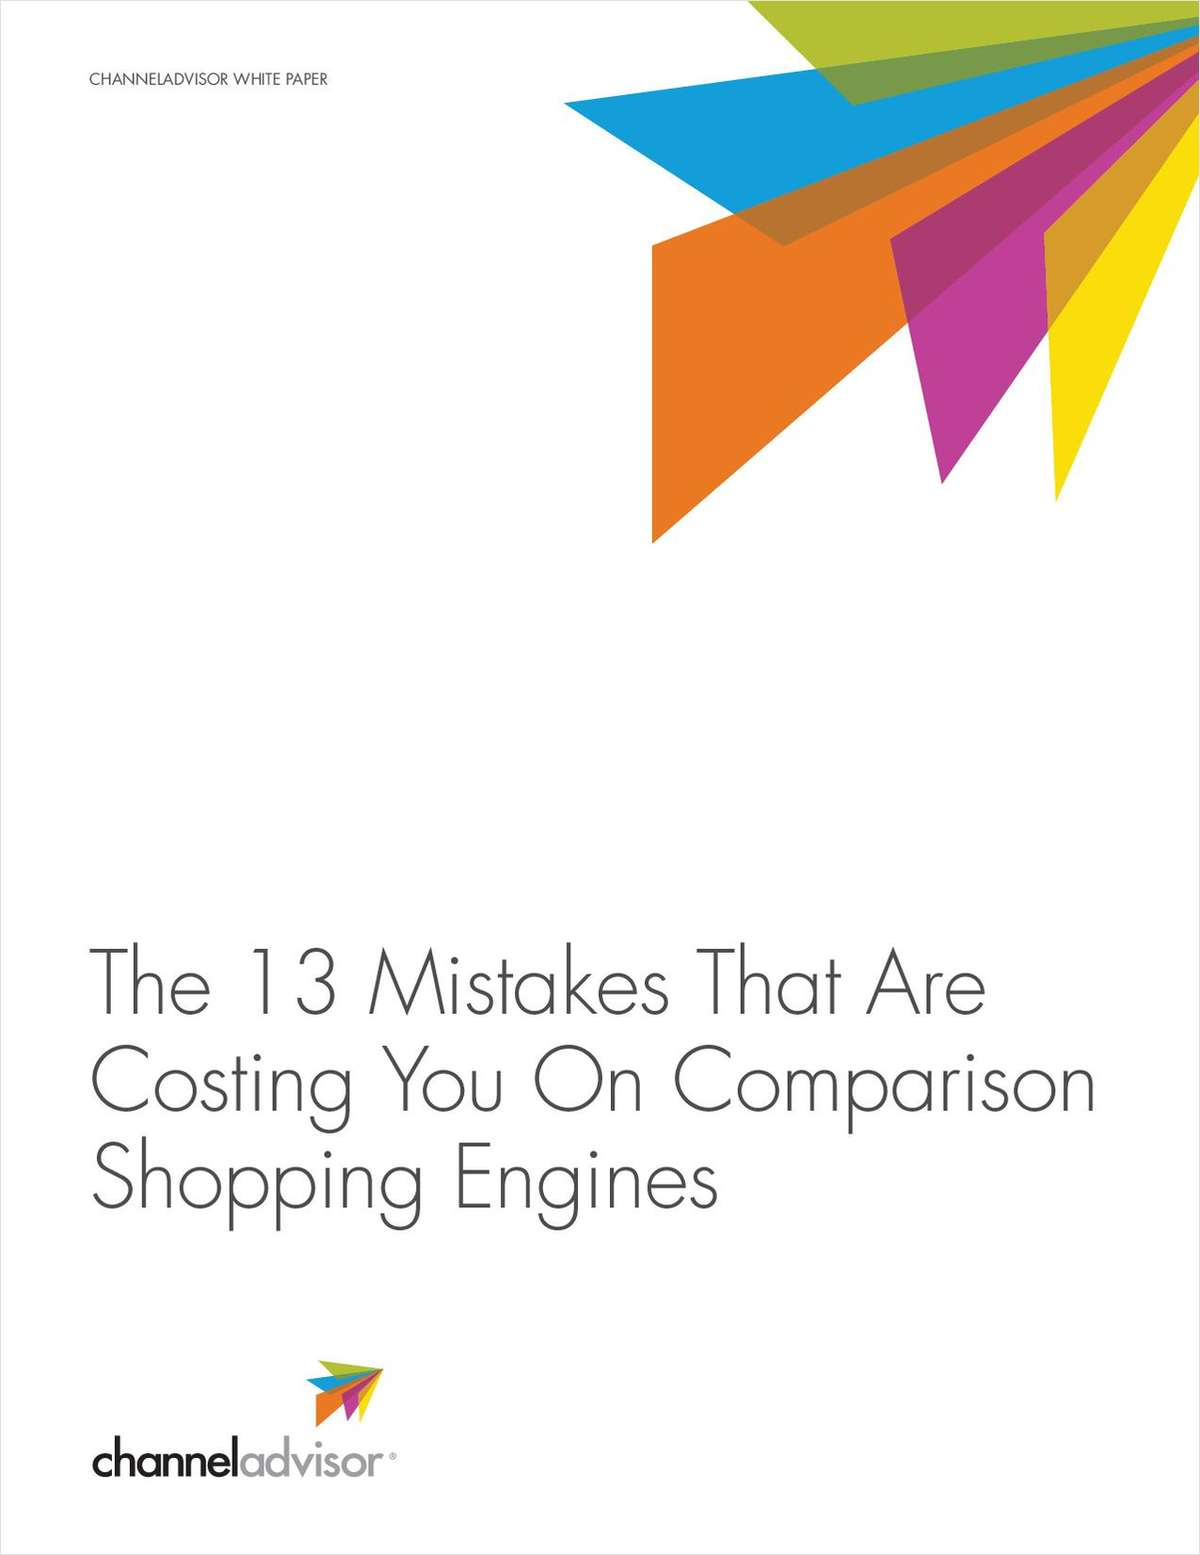 The 13 Mistakes that are Costing Retailers on Comparison Shopping Engines